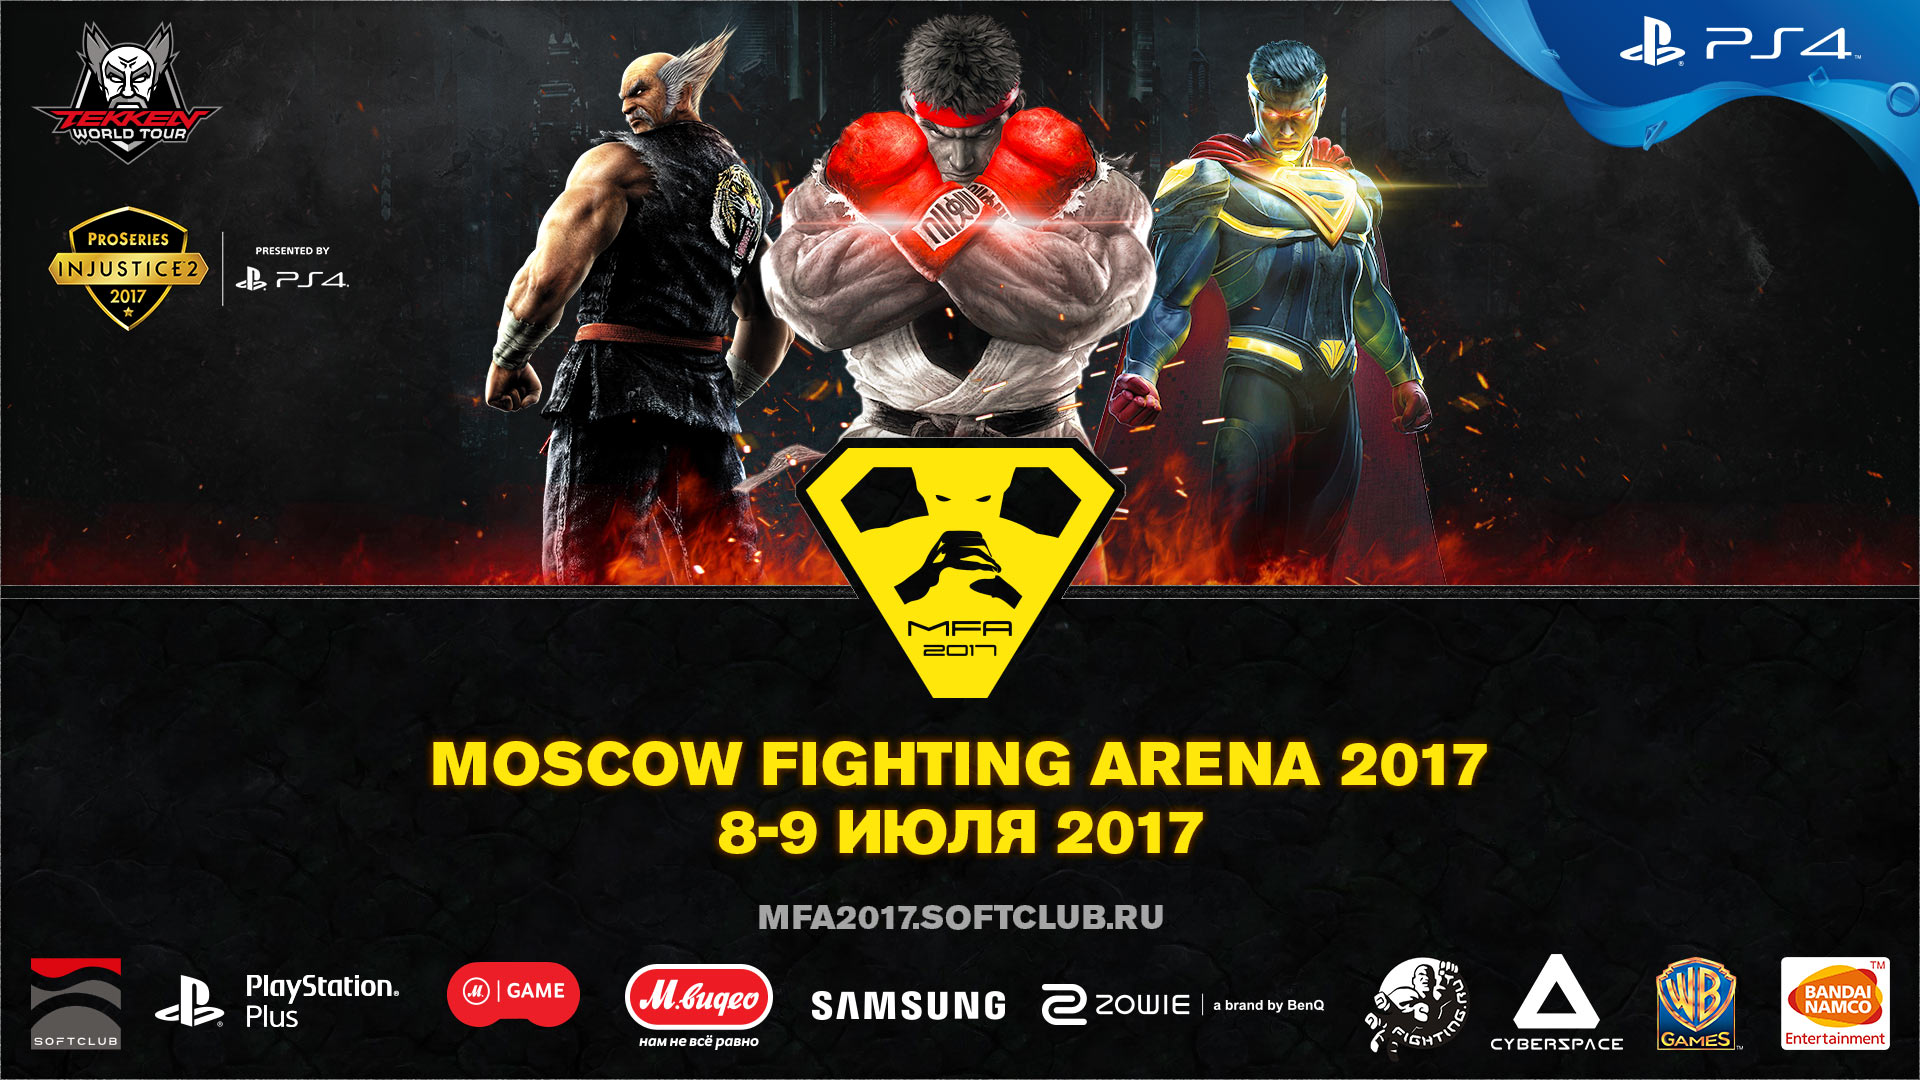 Moscow Fighting Arena 2017